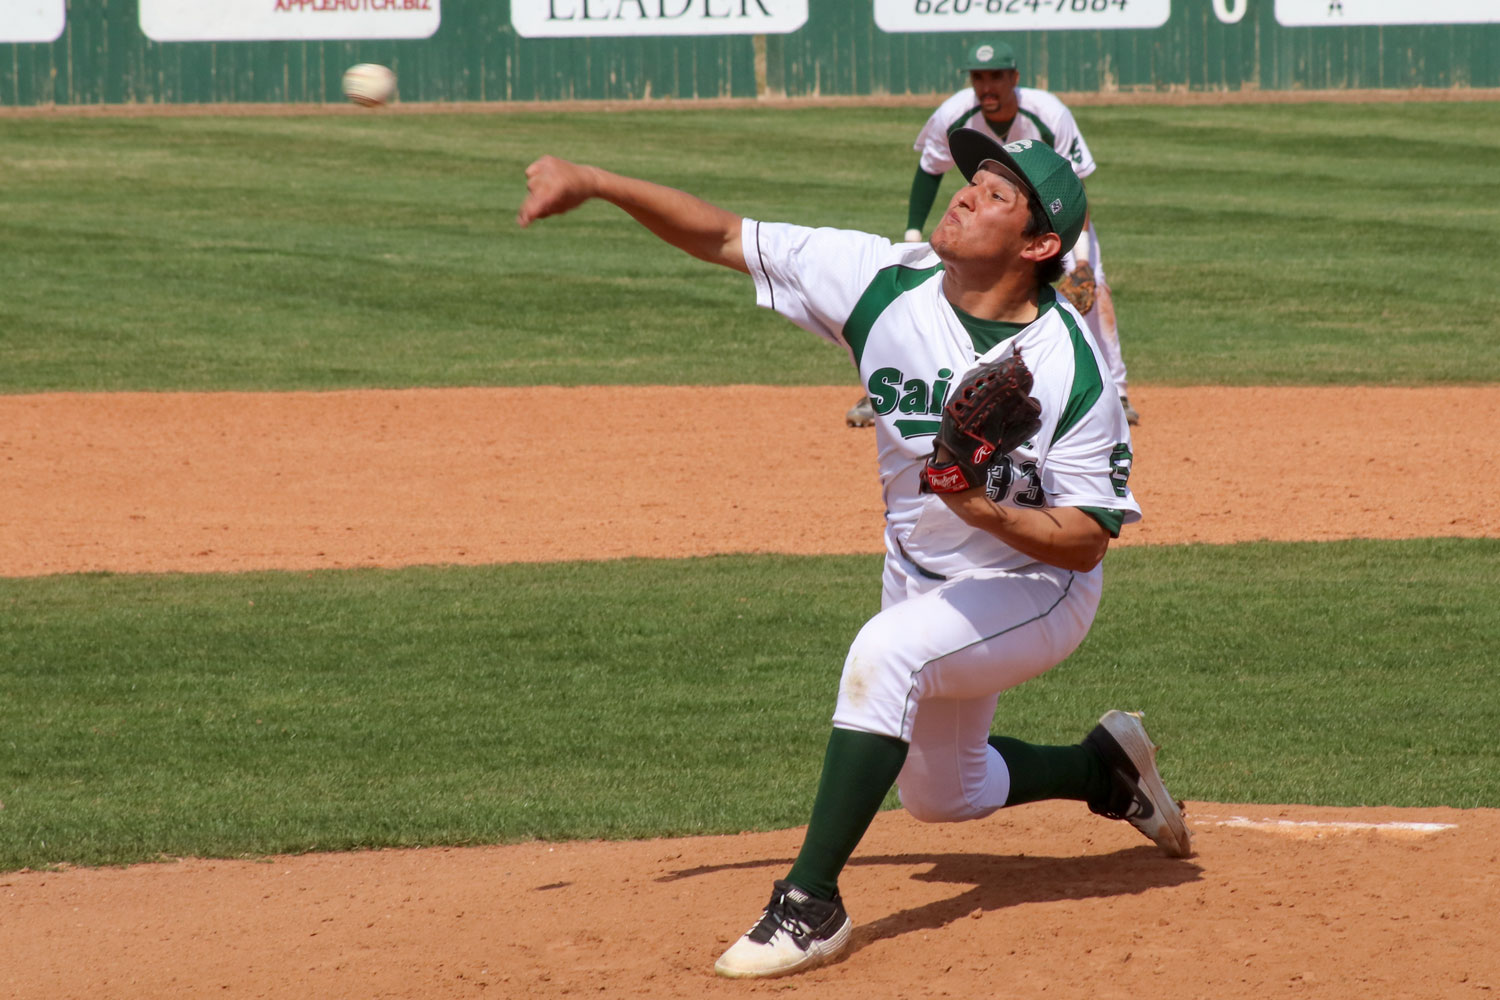 Rene+Ramirez+II+throws+hard+to+the+plate.+The+freshman+pitcher+has+thrown+seven+innings+in+relief+this+semester.%0A%0A